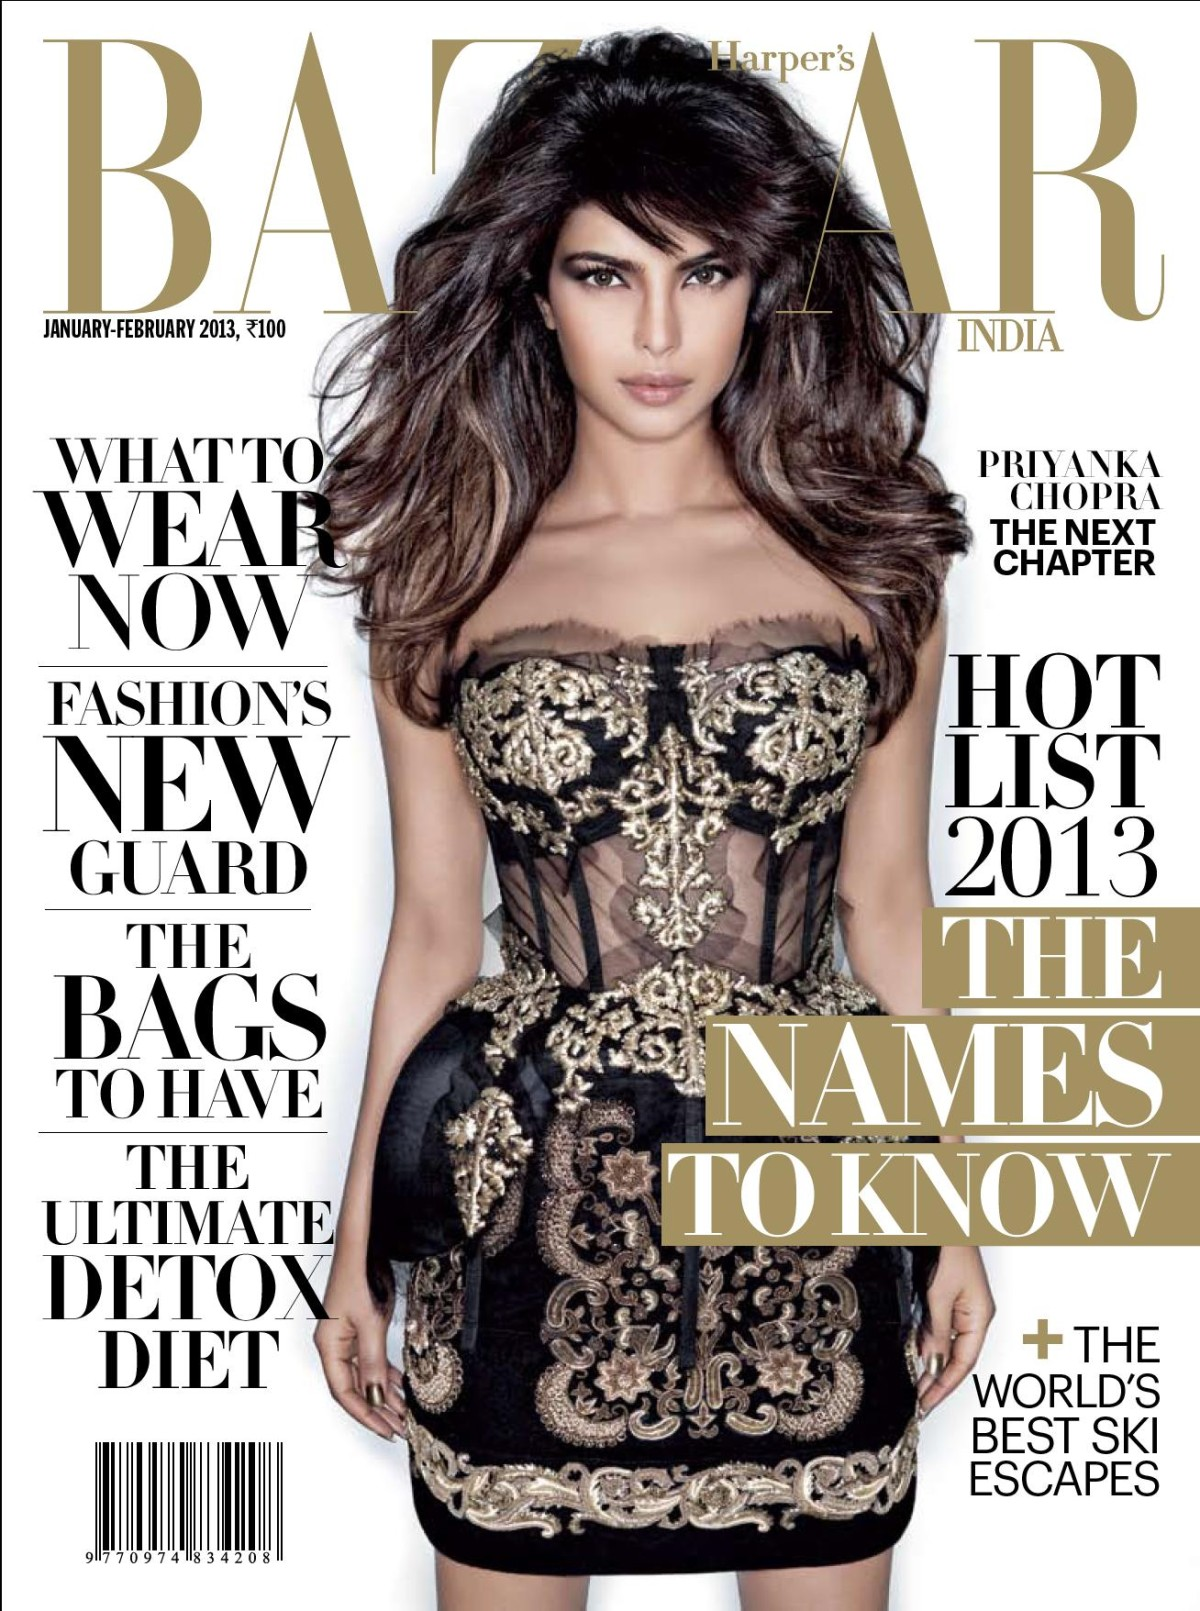 Priyanka Chopra on Harper's BAZAAR Jan- Feb 2013 Cover